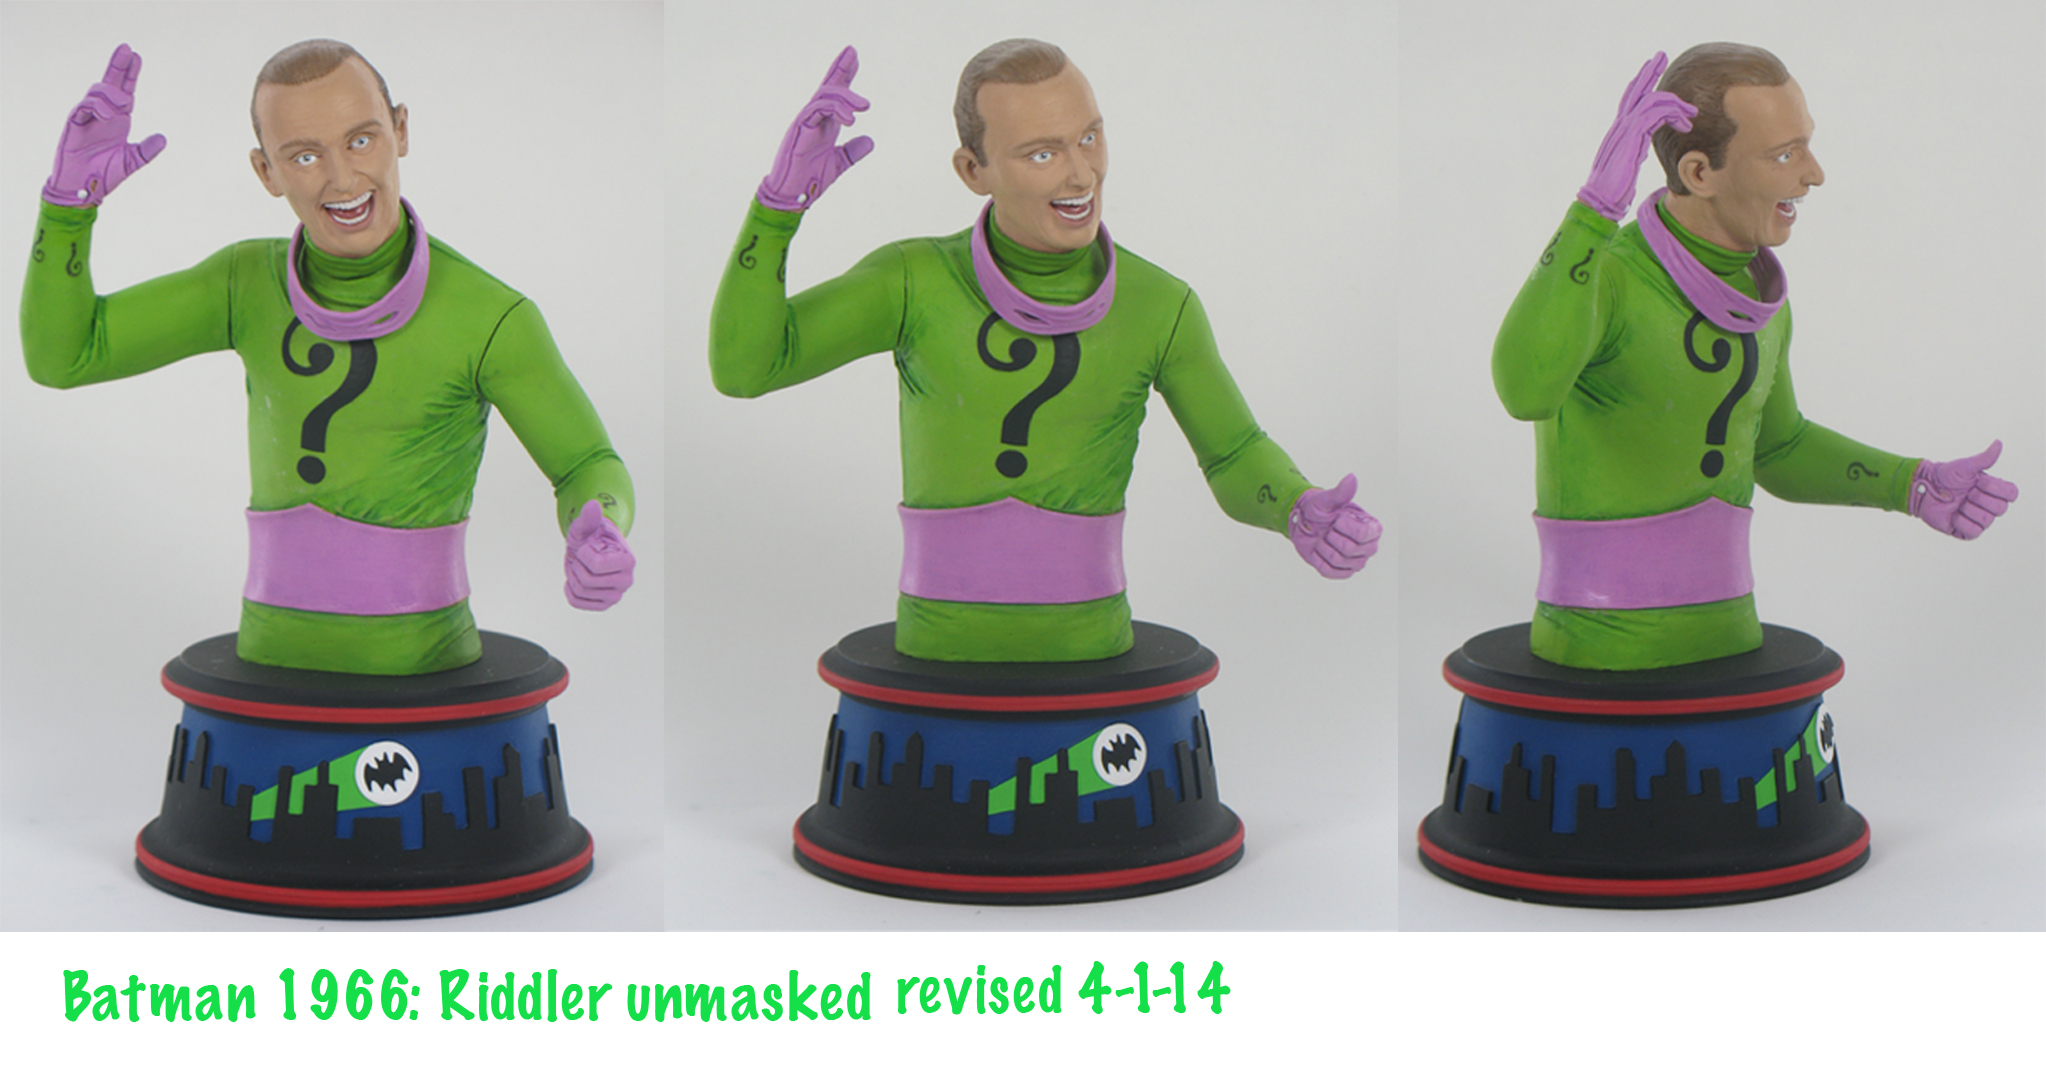 BM66-Riddler-paint-revised-4-1-14a